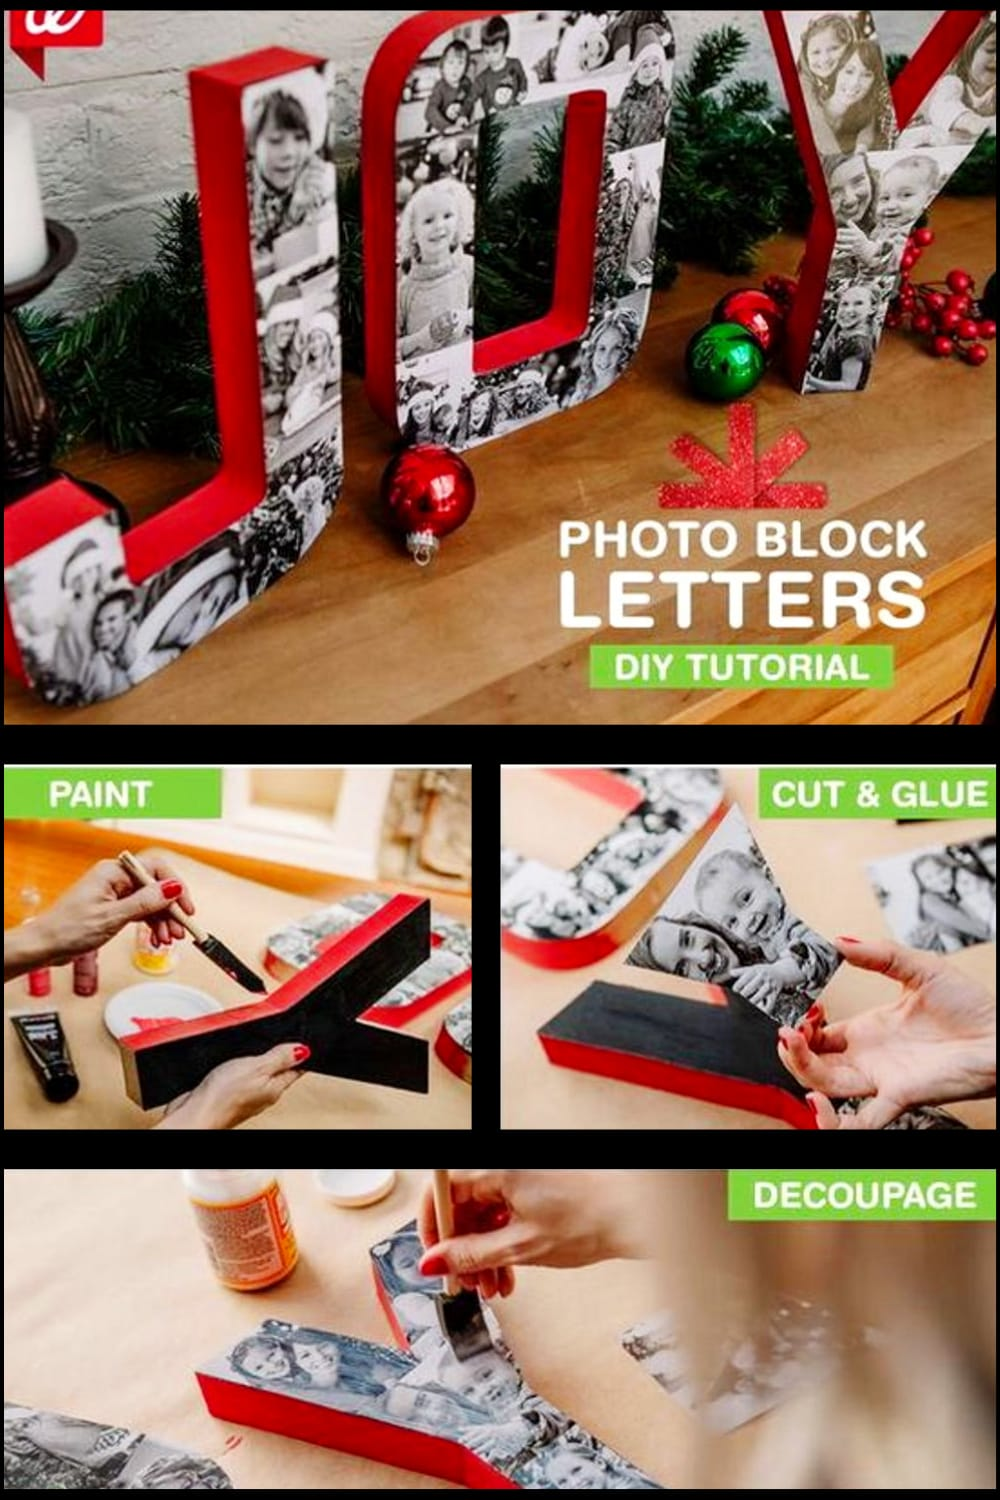 Wooden letter photo collage ideas and tutorials - how to make a picture collage on wood letters or on cardboard.  Super creative letter picture collage ideas like this Christmas wooden word photo collage to give as a handmade Christmas gift or to decorate your house in the Holiday spirit this Christmas